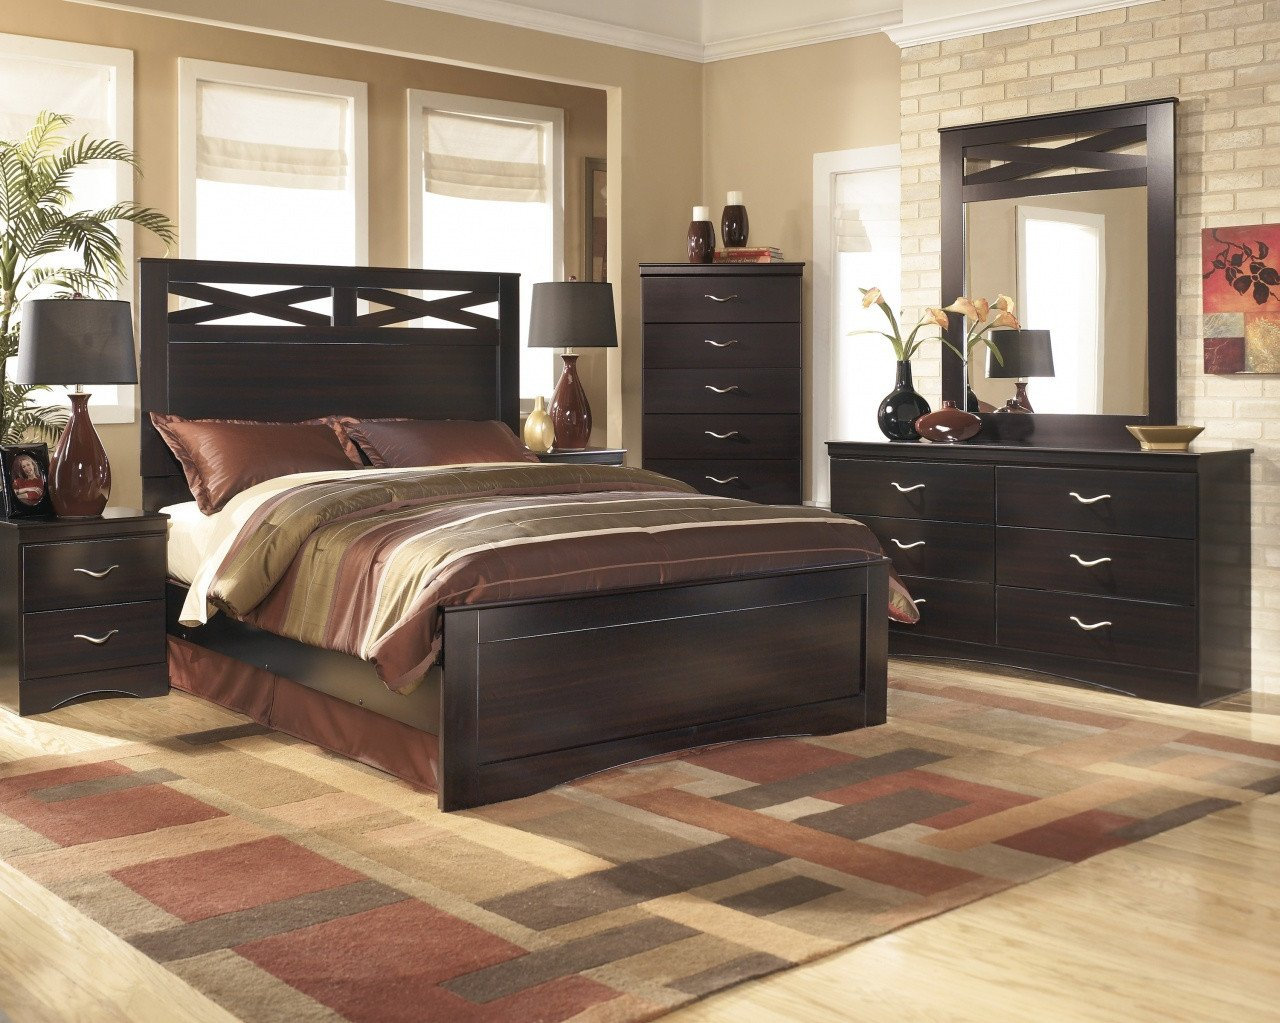 Ashley Millennium Bedroom Set Lovely ashley Furniture Queen Bedroom Sets – the New Daily Nation